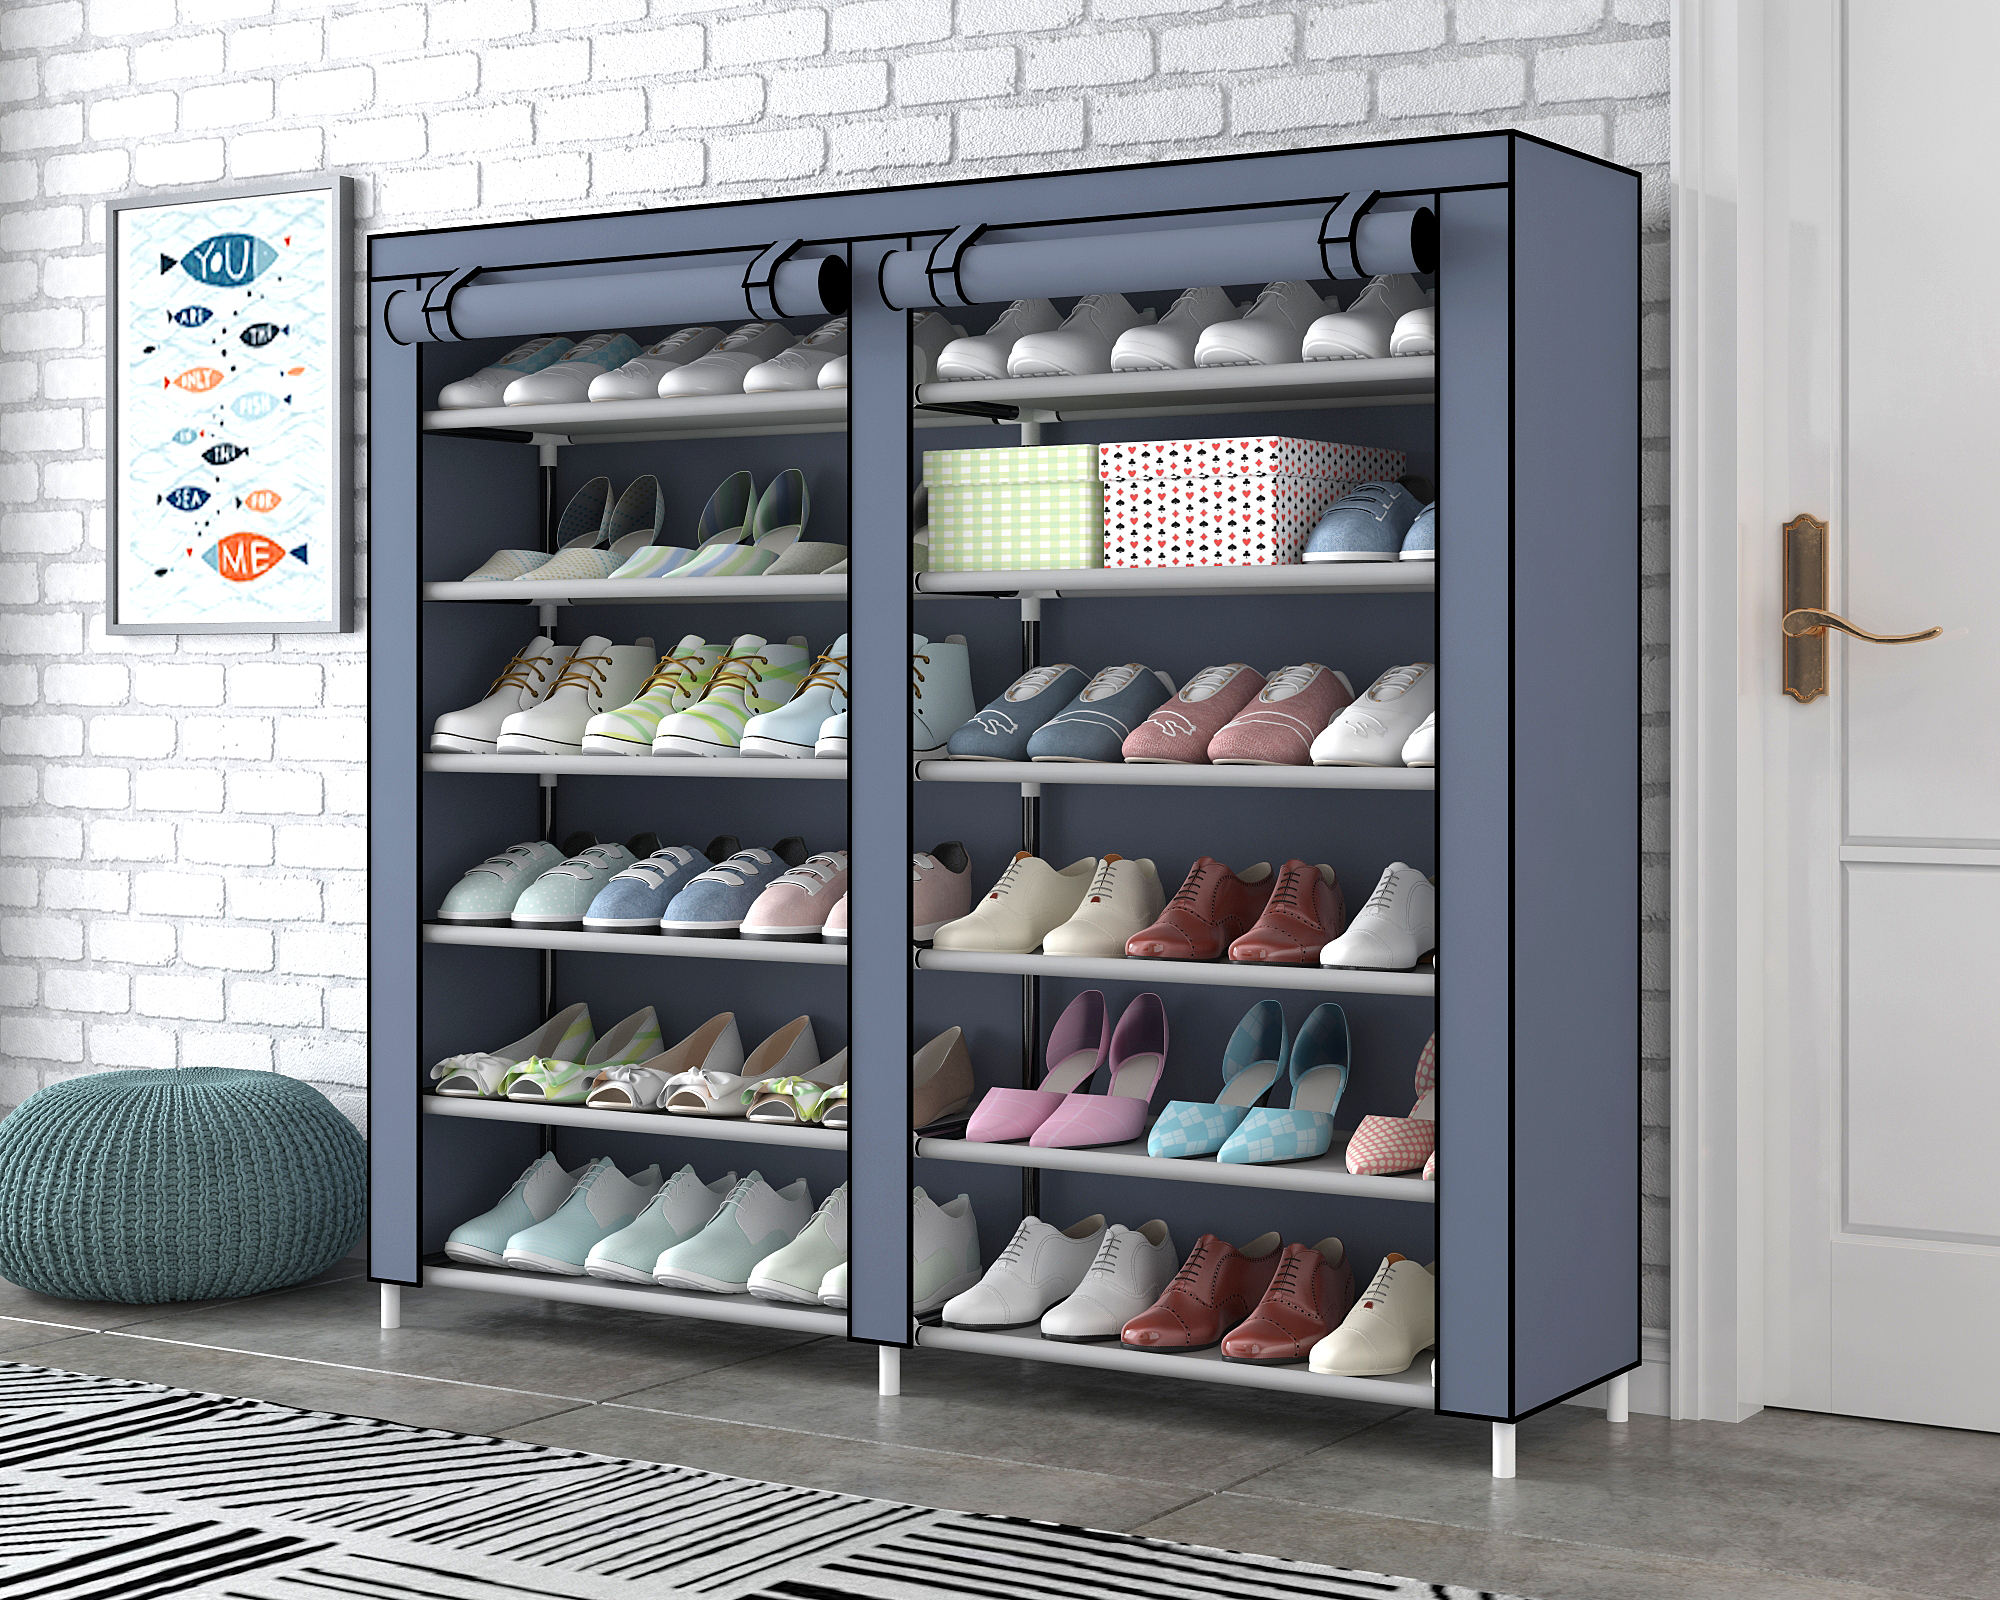 50 pair portable fabric shoe rack organizer cabinet for store steel double layer shoes foldable matel shelf for home modern